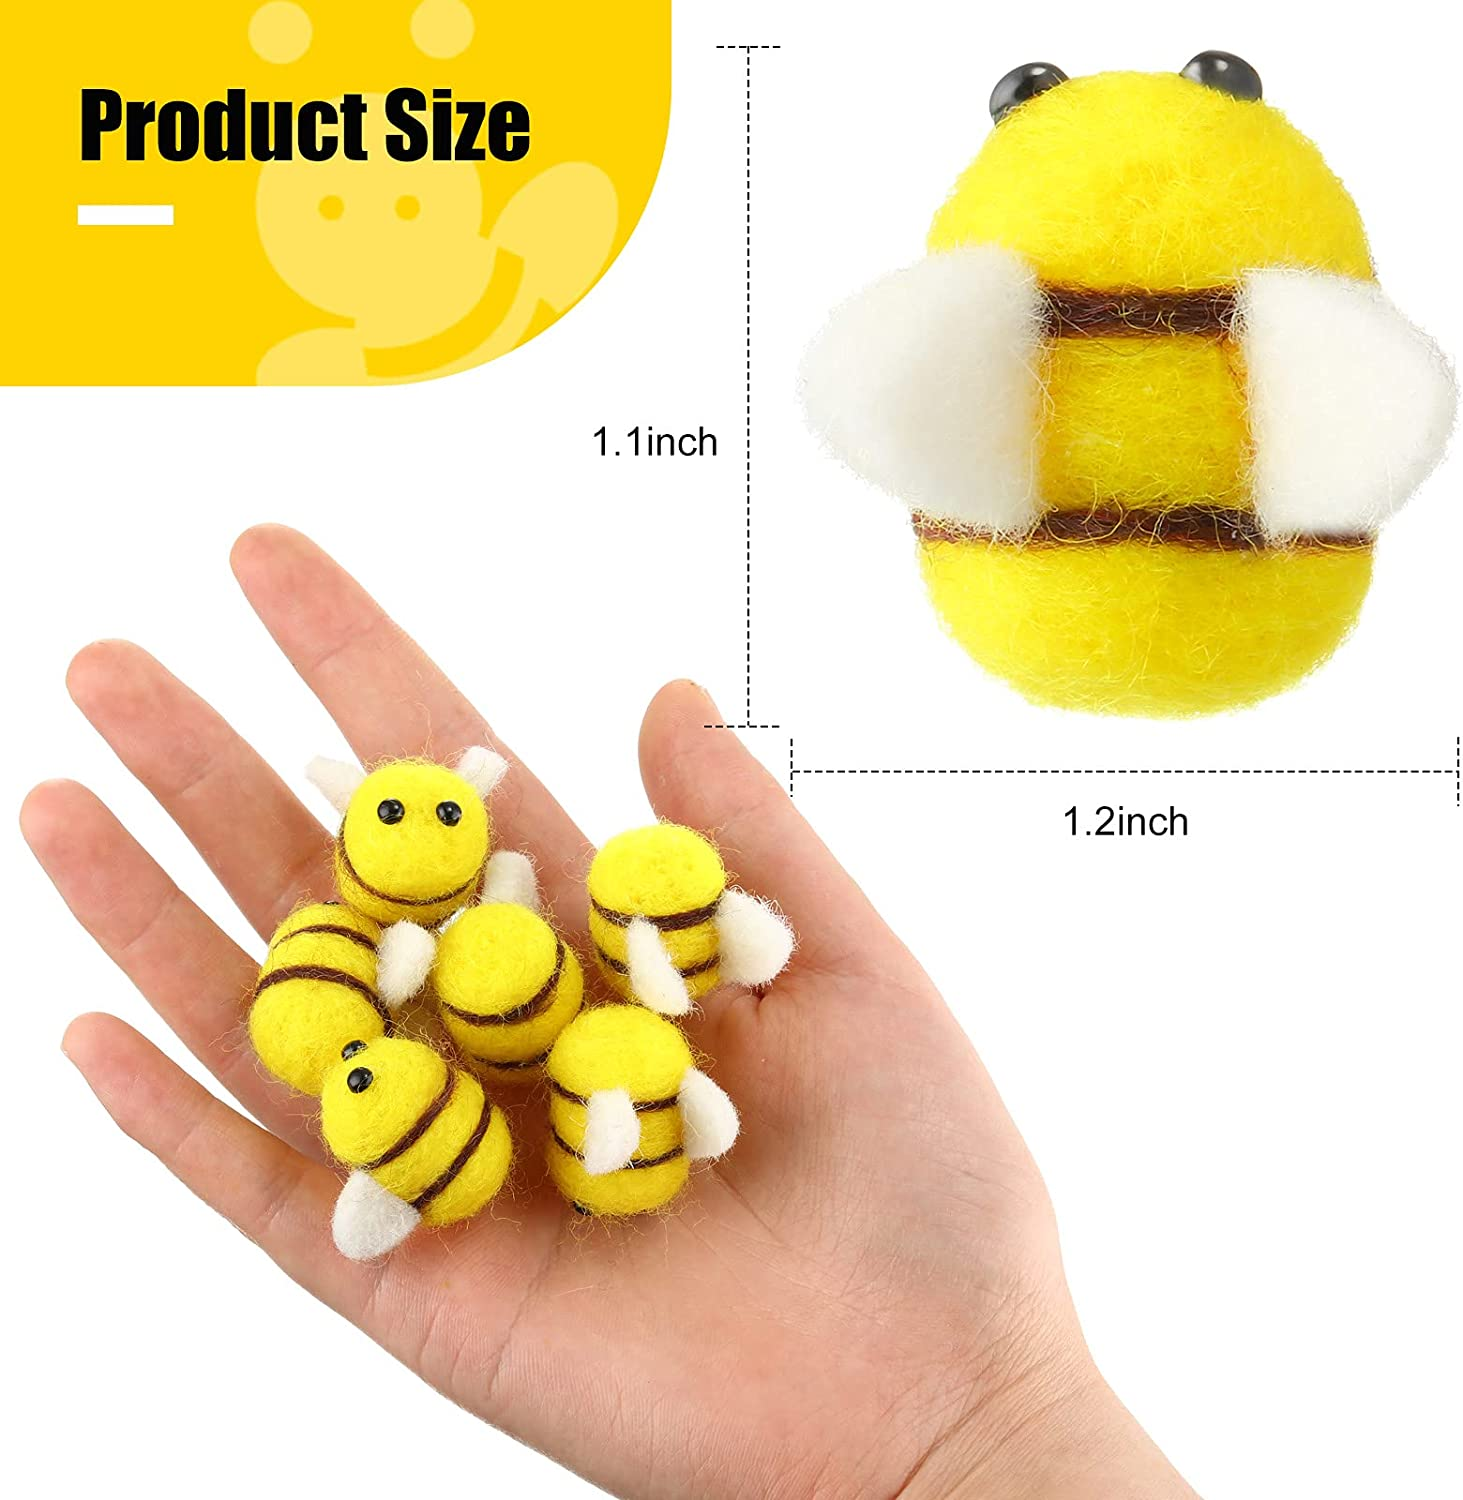 Skylety 30 Pieces Wool Felt Bee Bumble Bee Mini Crafts Honey Bee Pom Poms for Baby Shower Gender Reveal Party Tent Hat Decoration DIY and Handmade Crafts